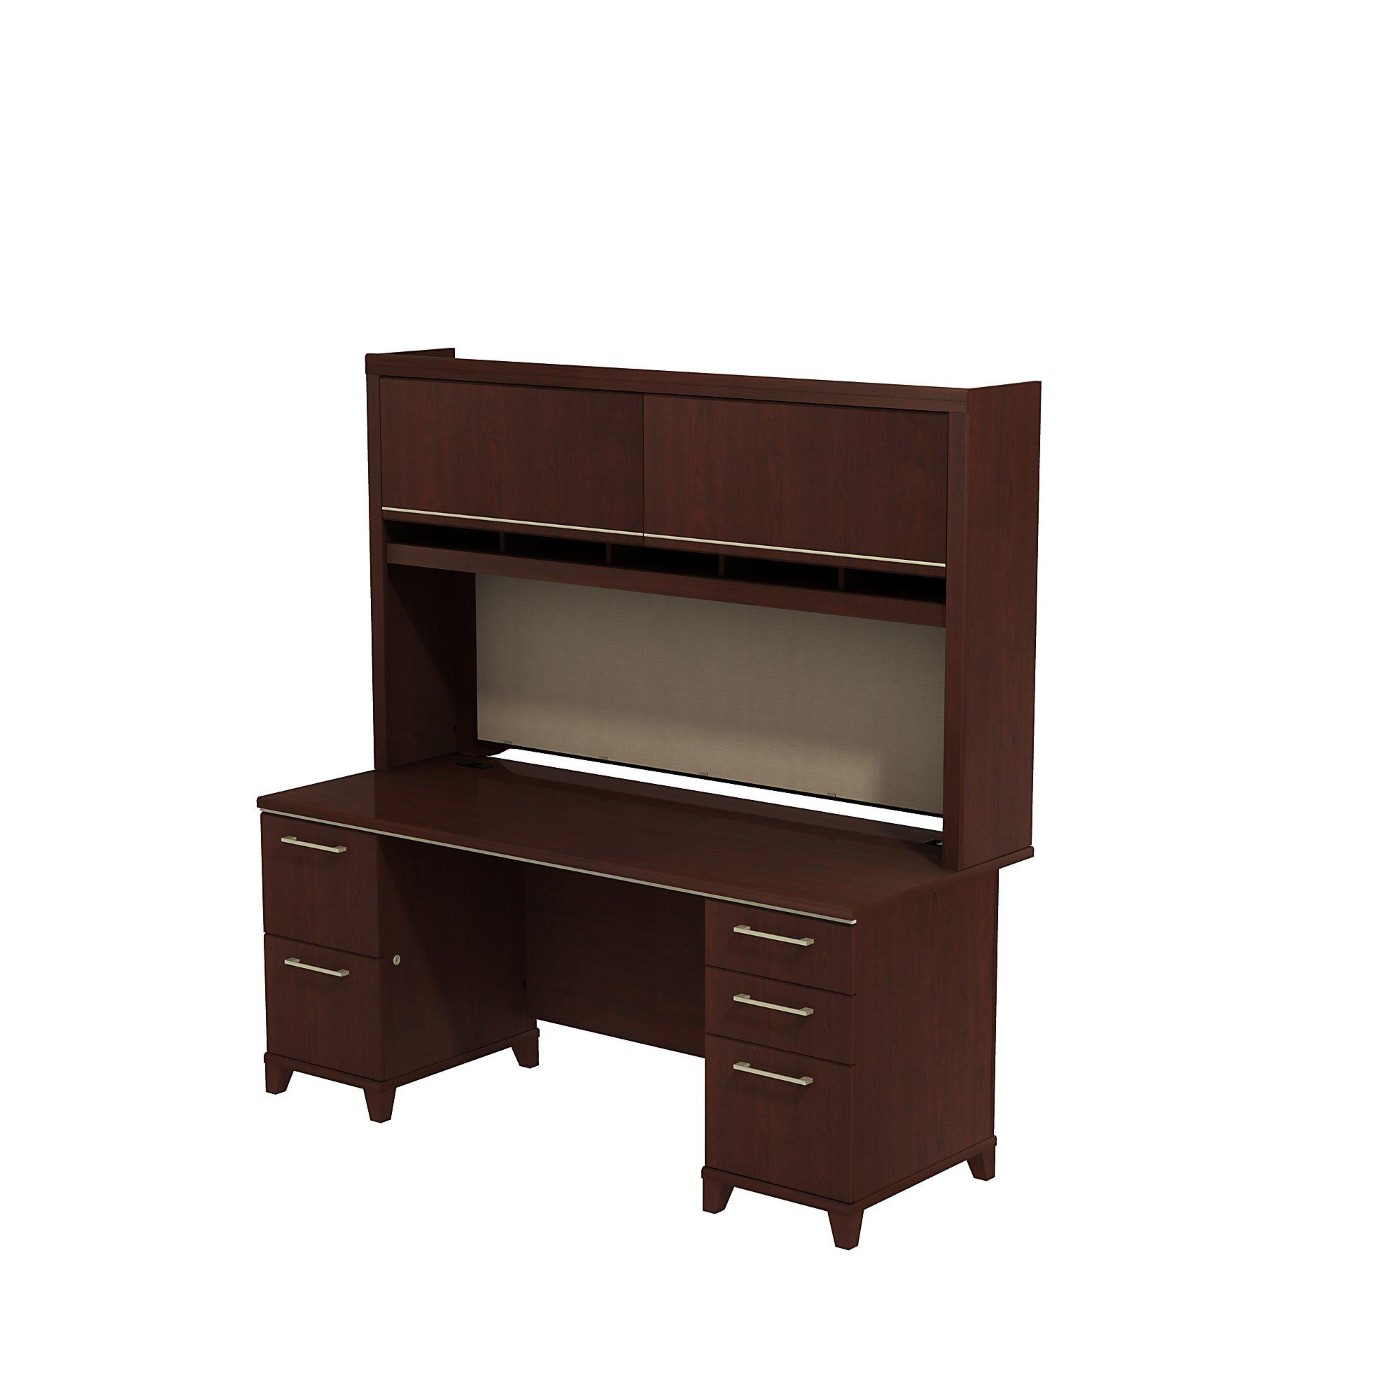 <font color=#c60><b>BUSH BUSINESS FURNITURE ENTERPRISE 72W X 30D OFFICE DESK WITH HUTCH AND 2 PEDESTALS #EH-ENT006CS. FREE SHIPPING</font></b>